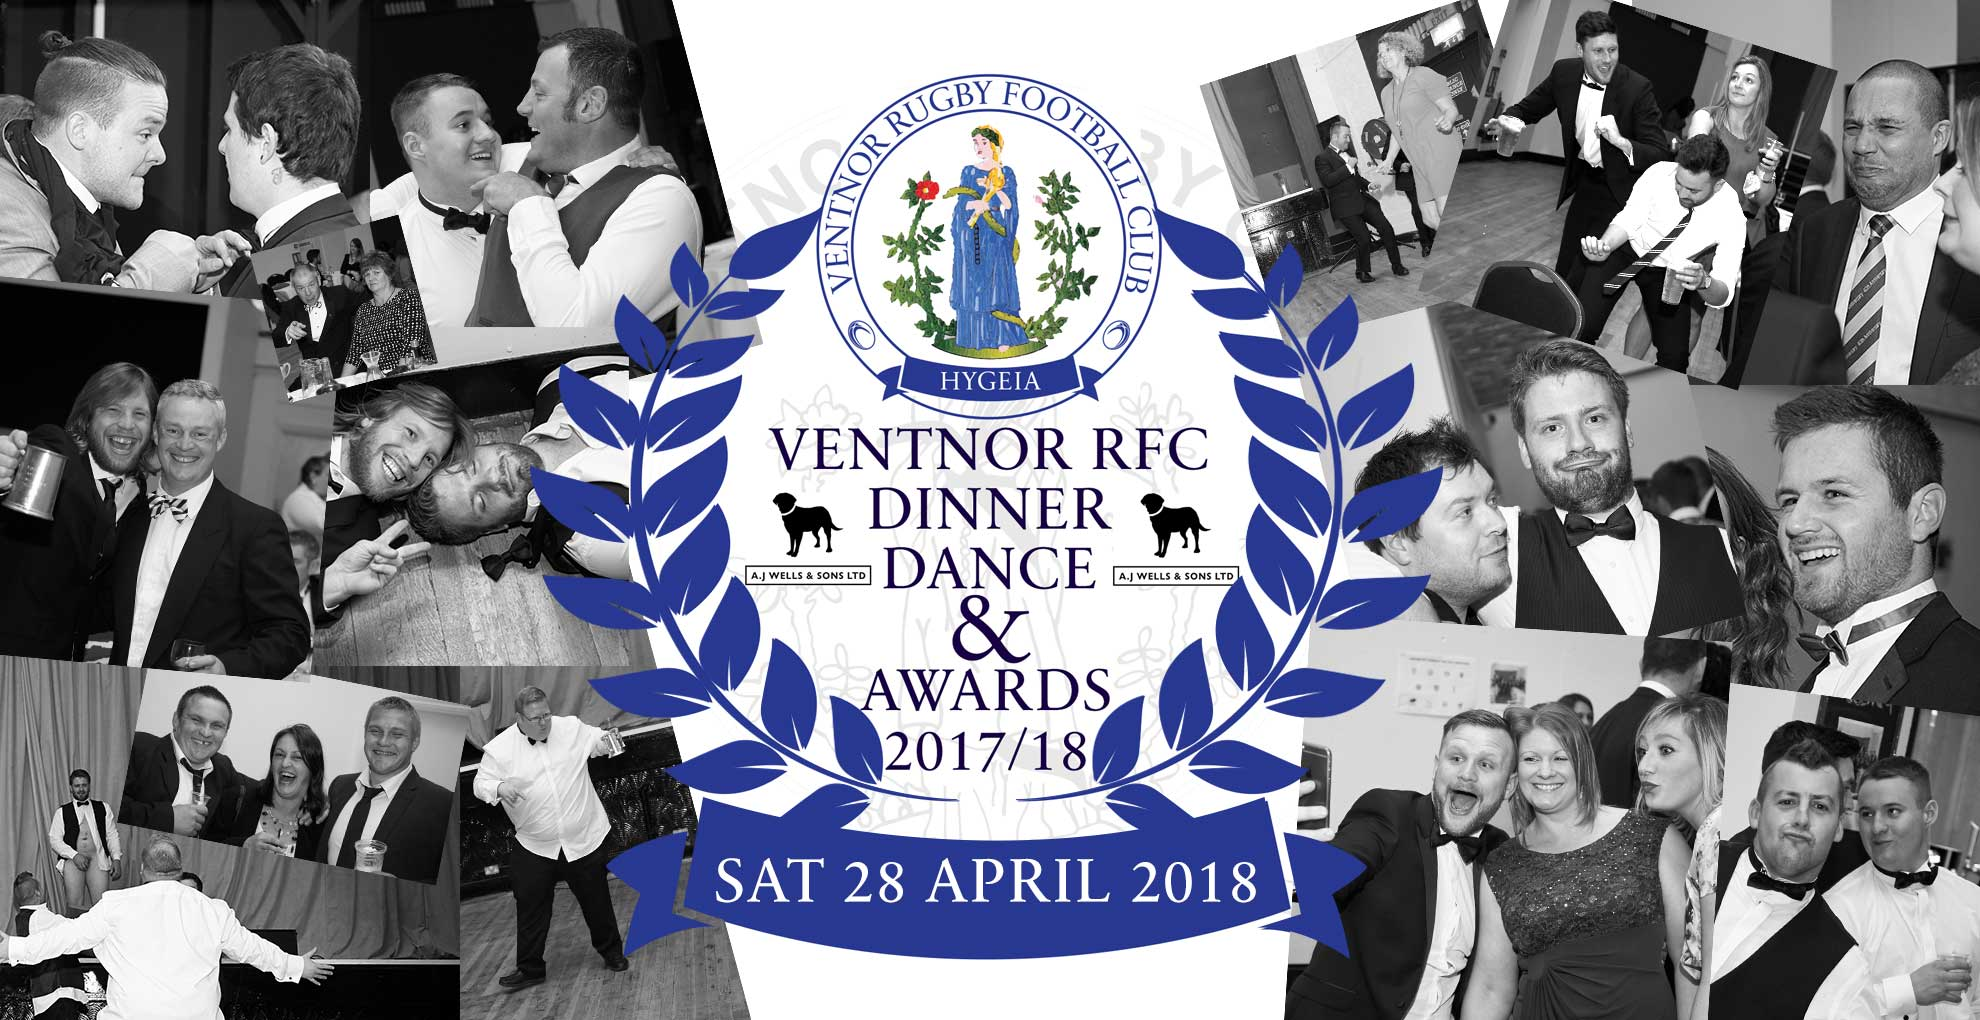 Ventnor RFC End of Season Dinner Dance & Awards 2017-18